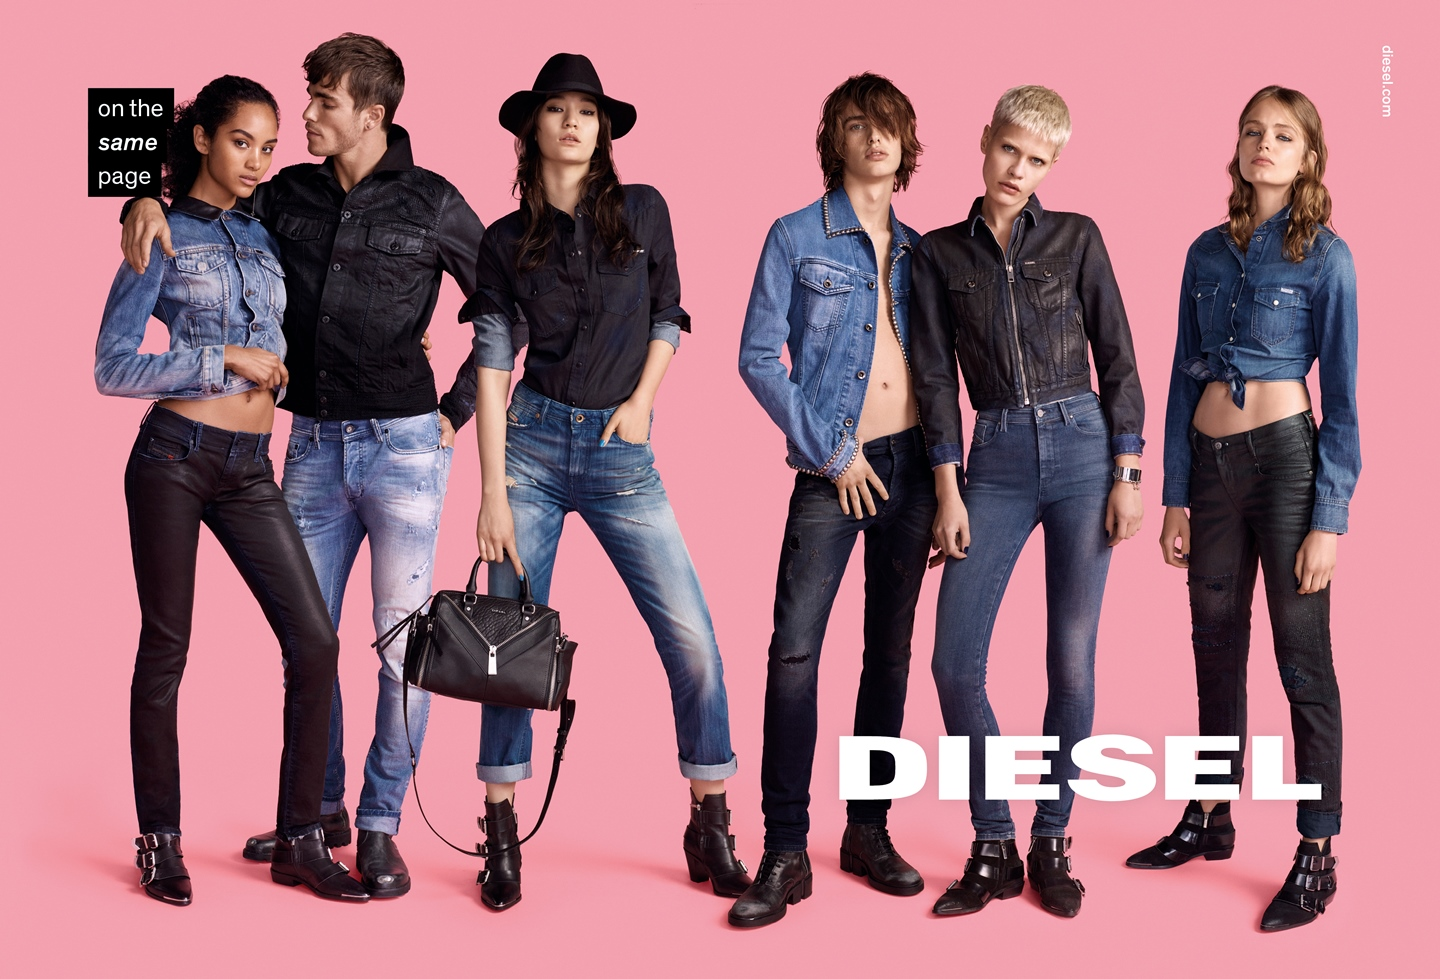 289209_623206_diesel_campaign_fw16_atl_denim_group_dps_highres